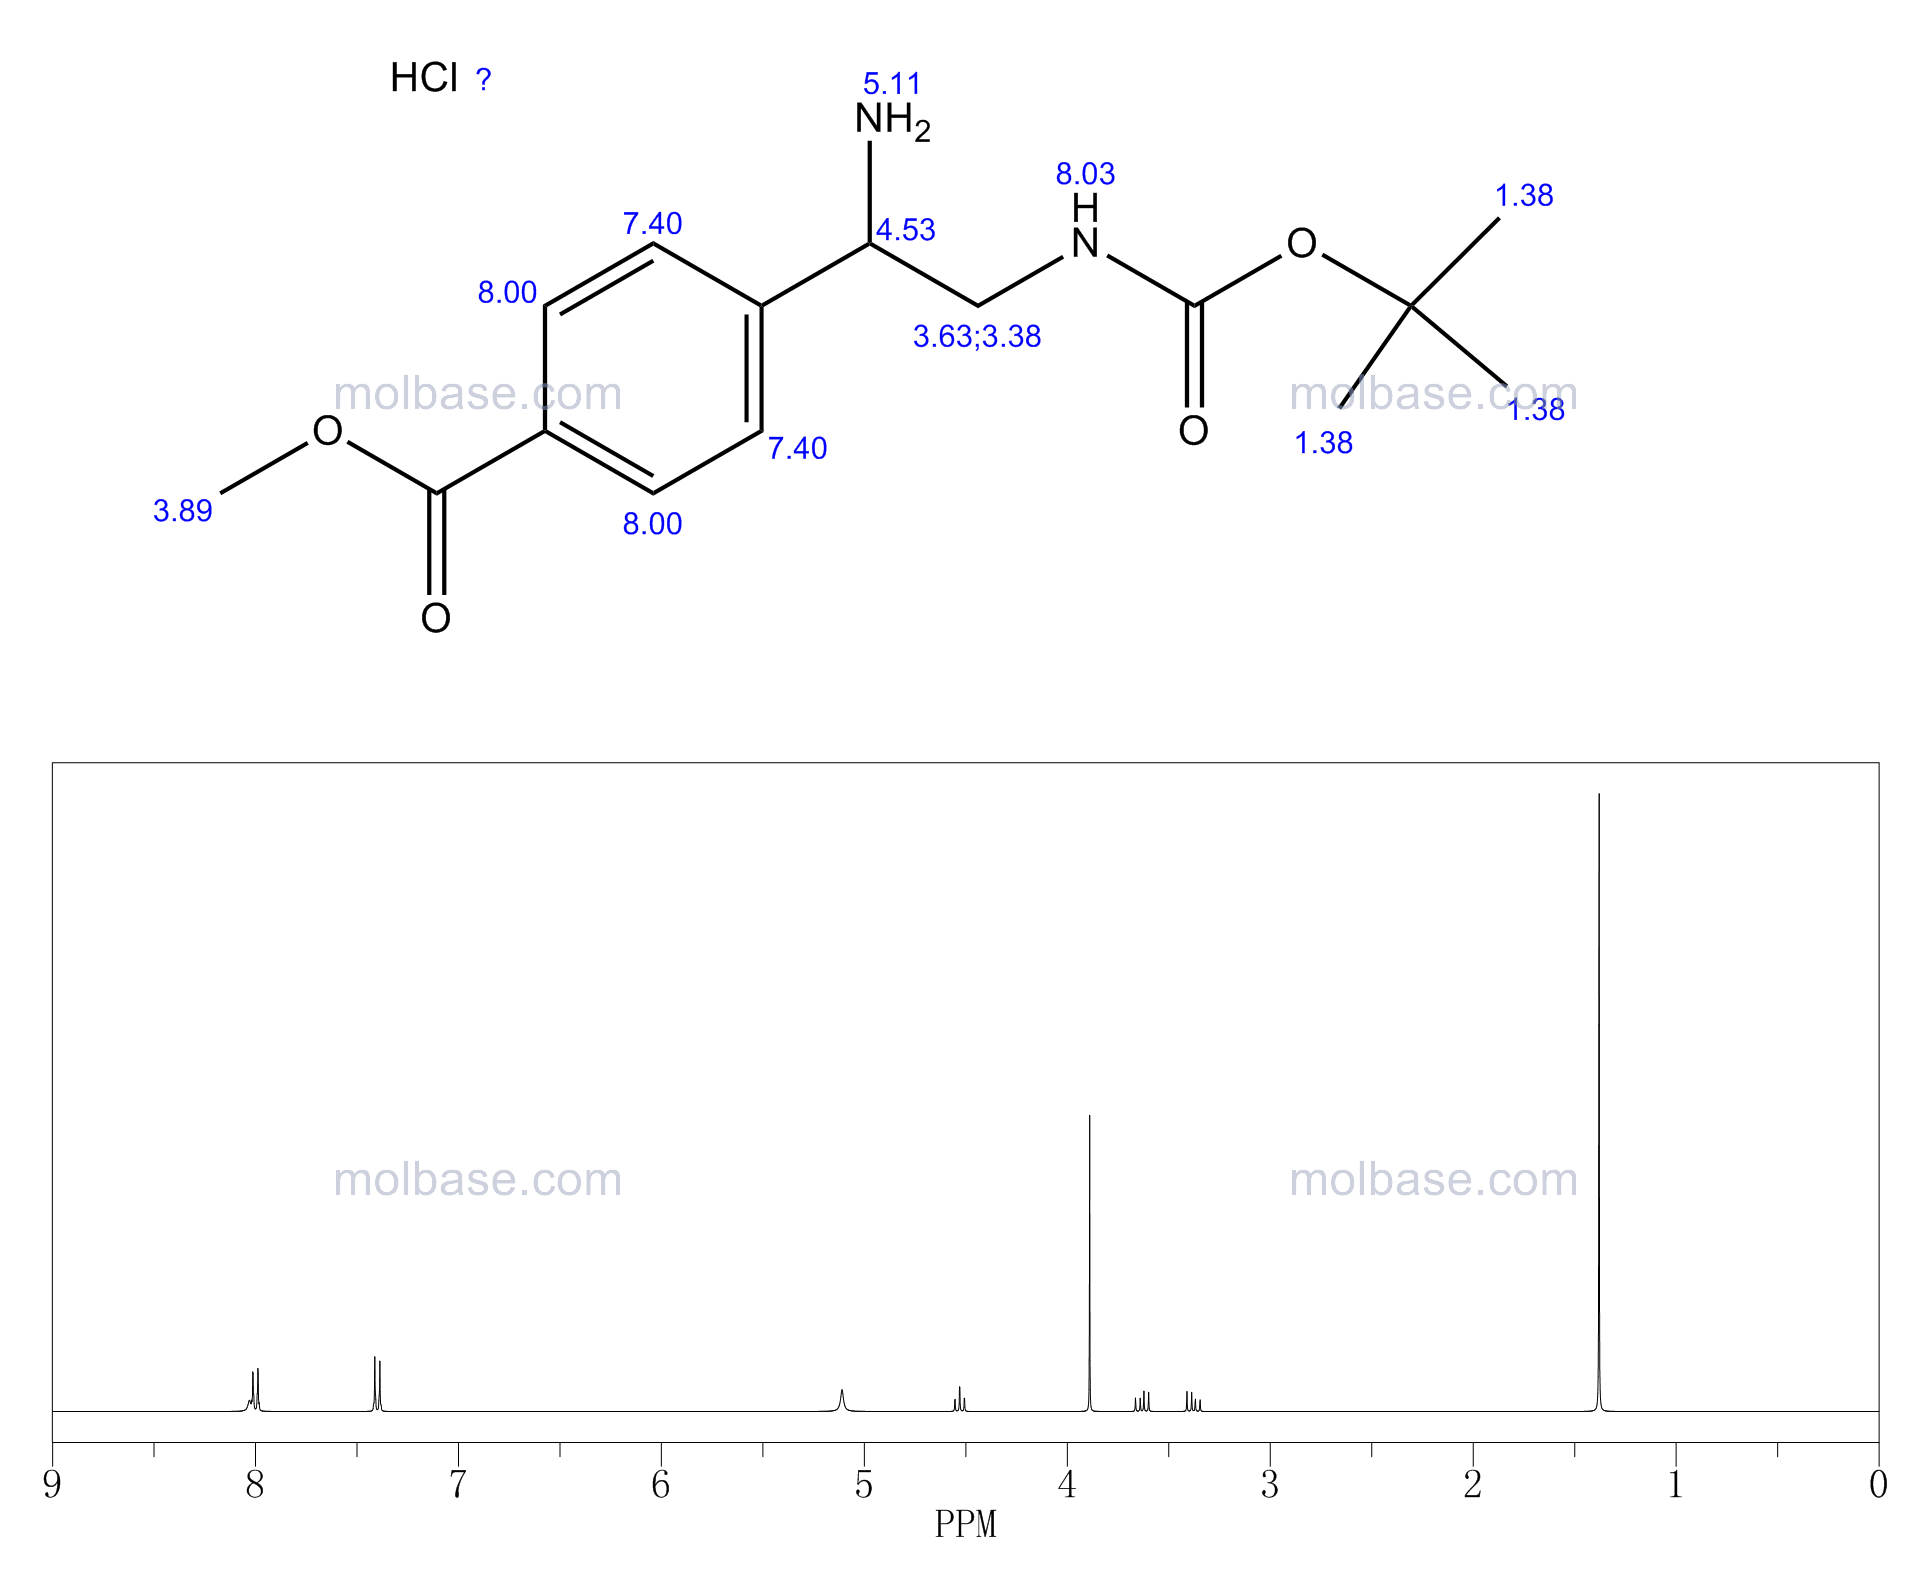 methyl 4-[1-amino-2-[(2-methylpropan-2-yl)oxycarbonylamino]ethyl]benzoate NMR spectra analysis, Chemical CAS NO. 939760-52-8 NMR spectral analysis, methyl 4-[1-amino-2-[(2-methylpropan-2-yl)oxycarbonylamino]ethyl]benzoate C-NMR spectrum